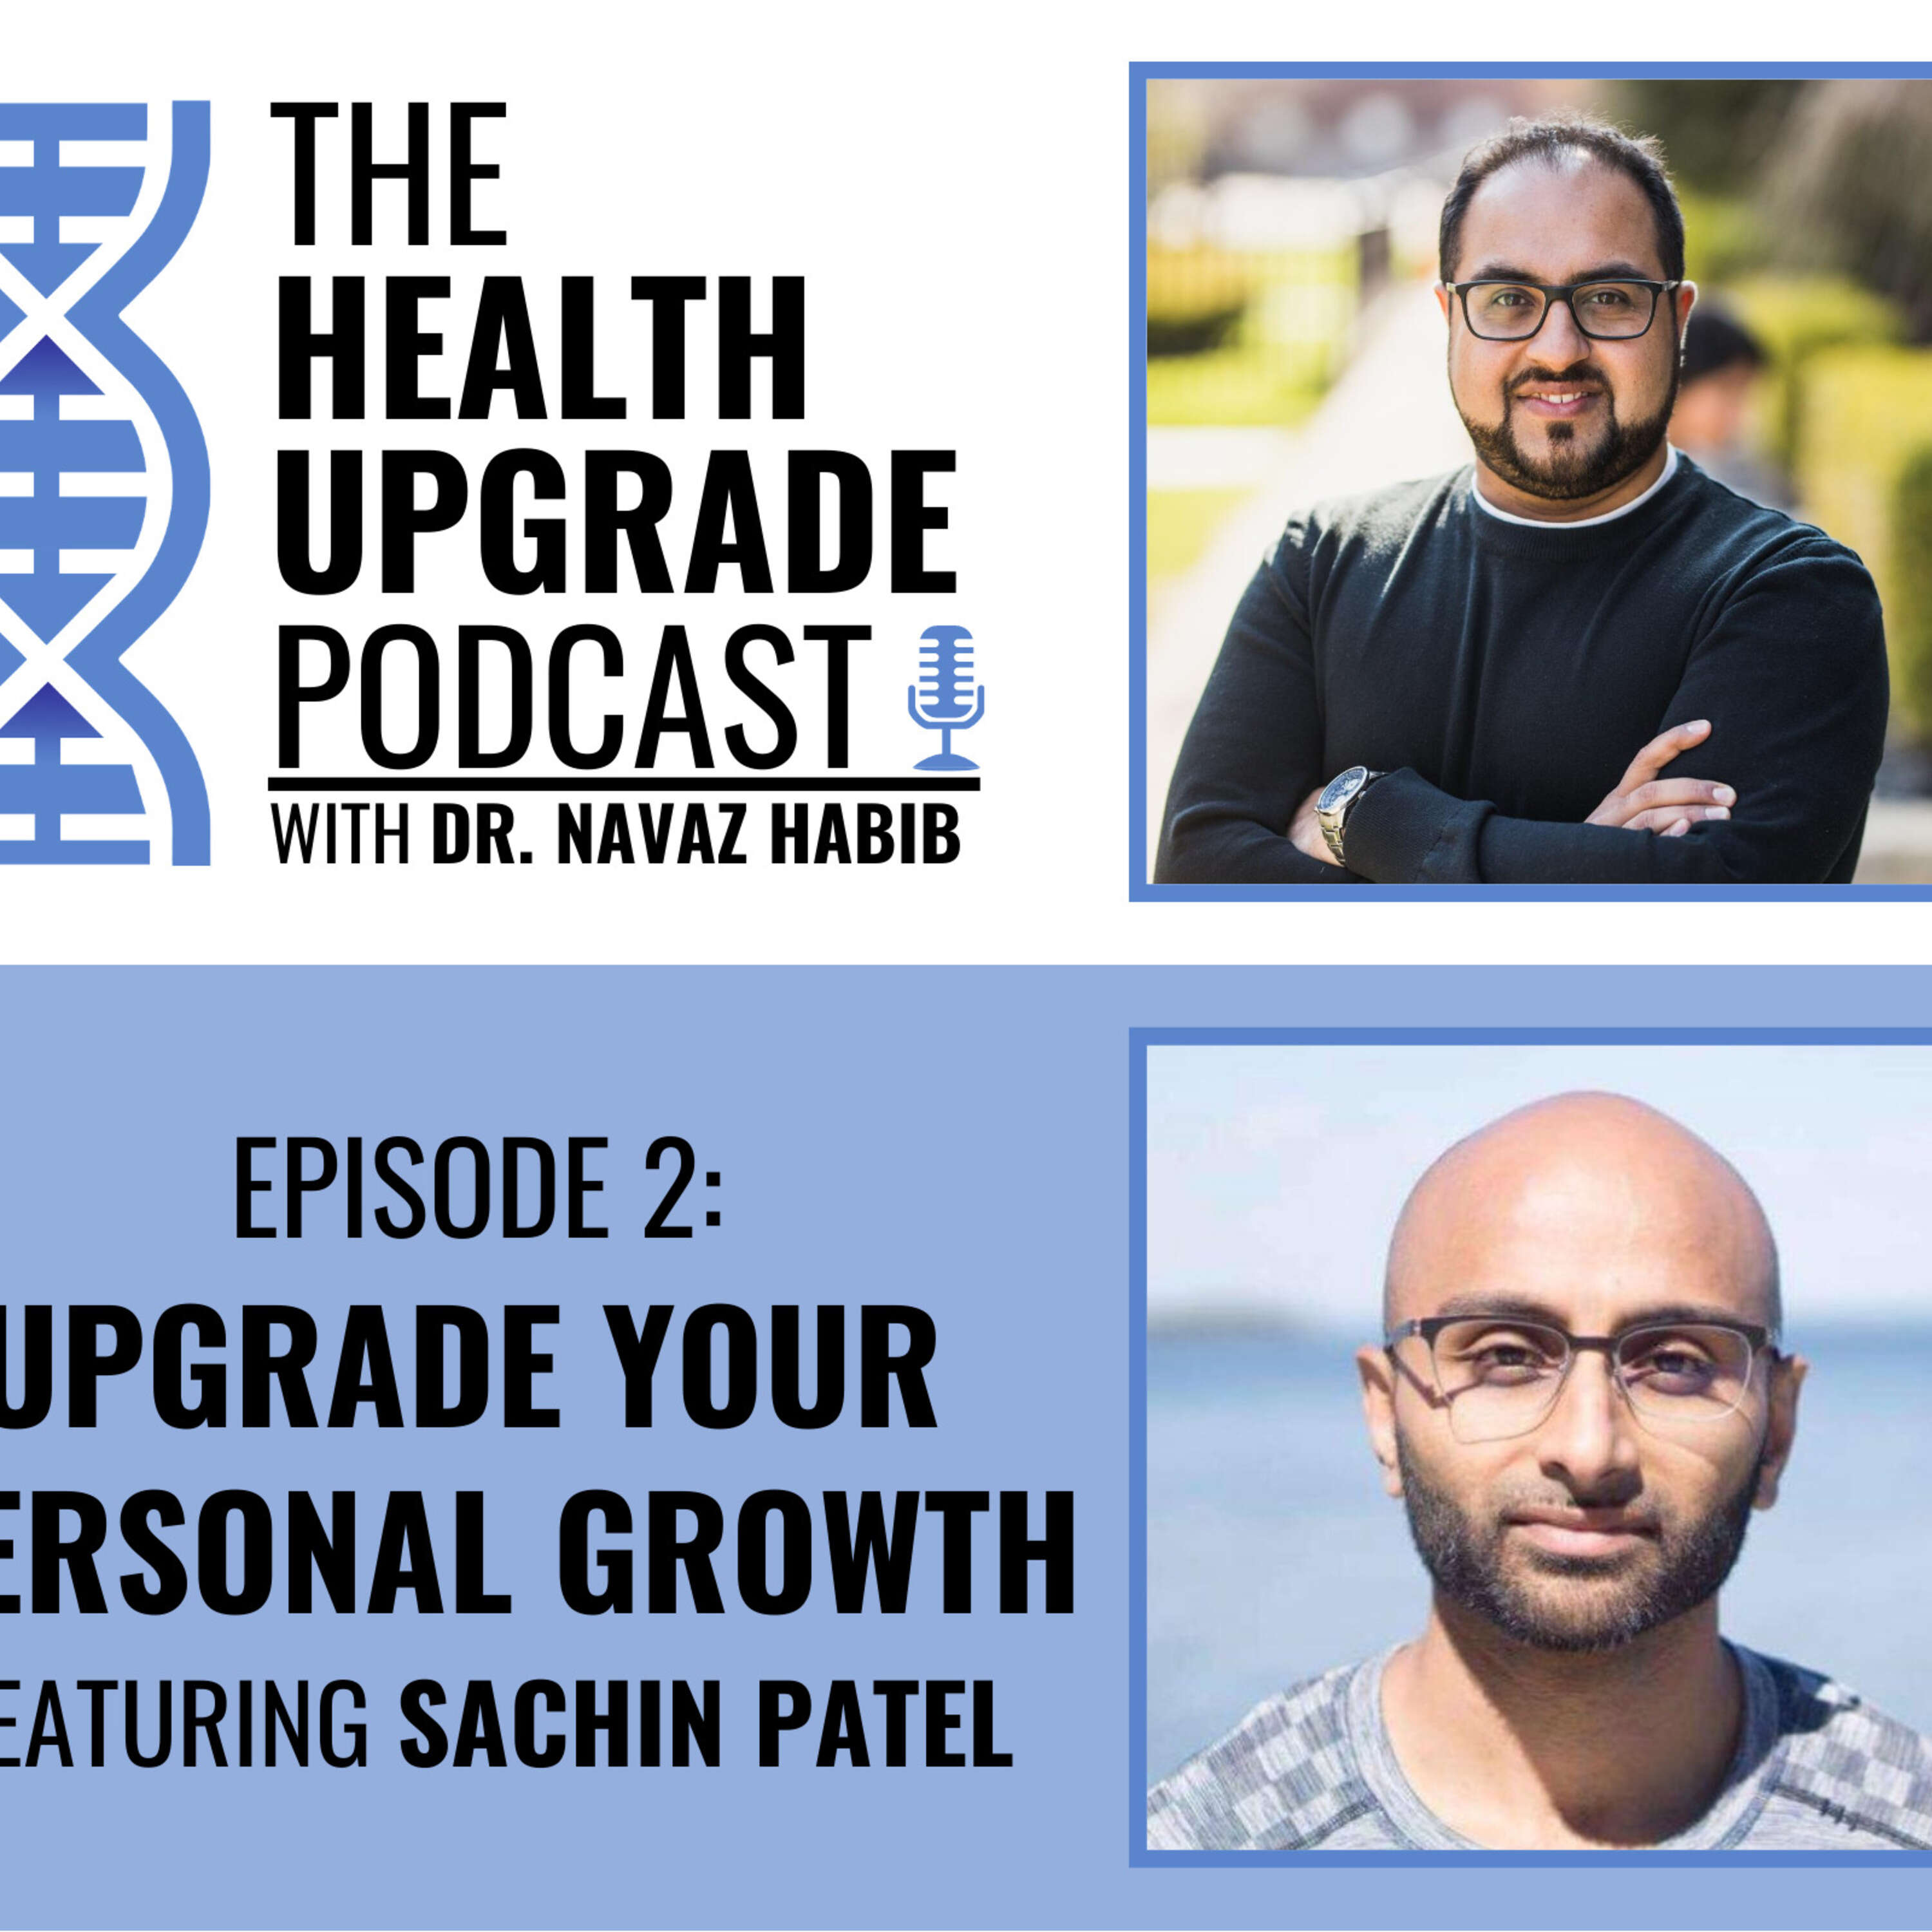 Upgrade your personal growth - featuring Sachin Patel